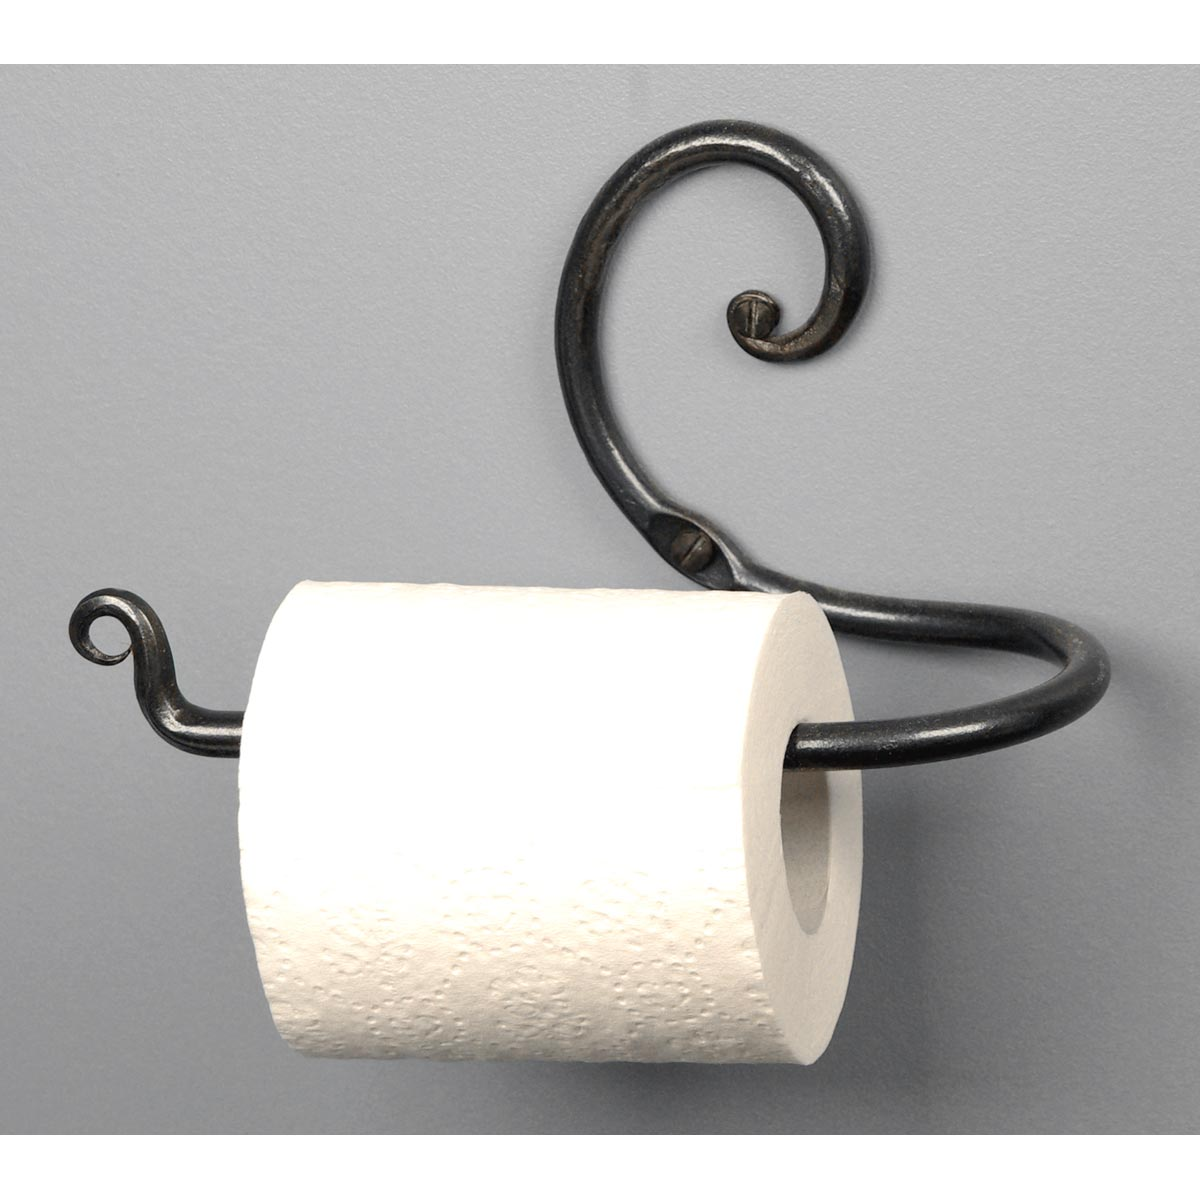 ba 10 curl toilet paper holder return to curl bathroom accessories - Bathroom Accessories Toilet Paper Holders